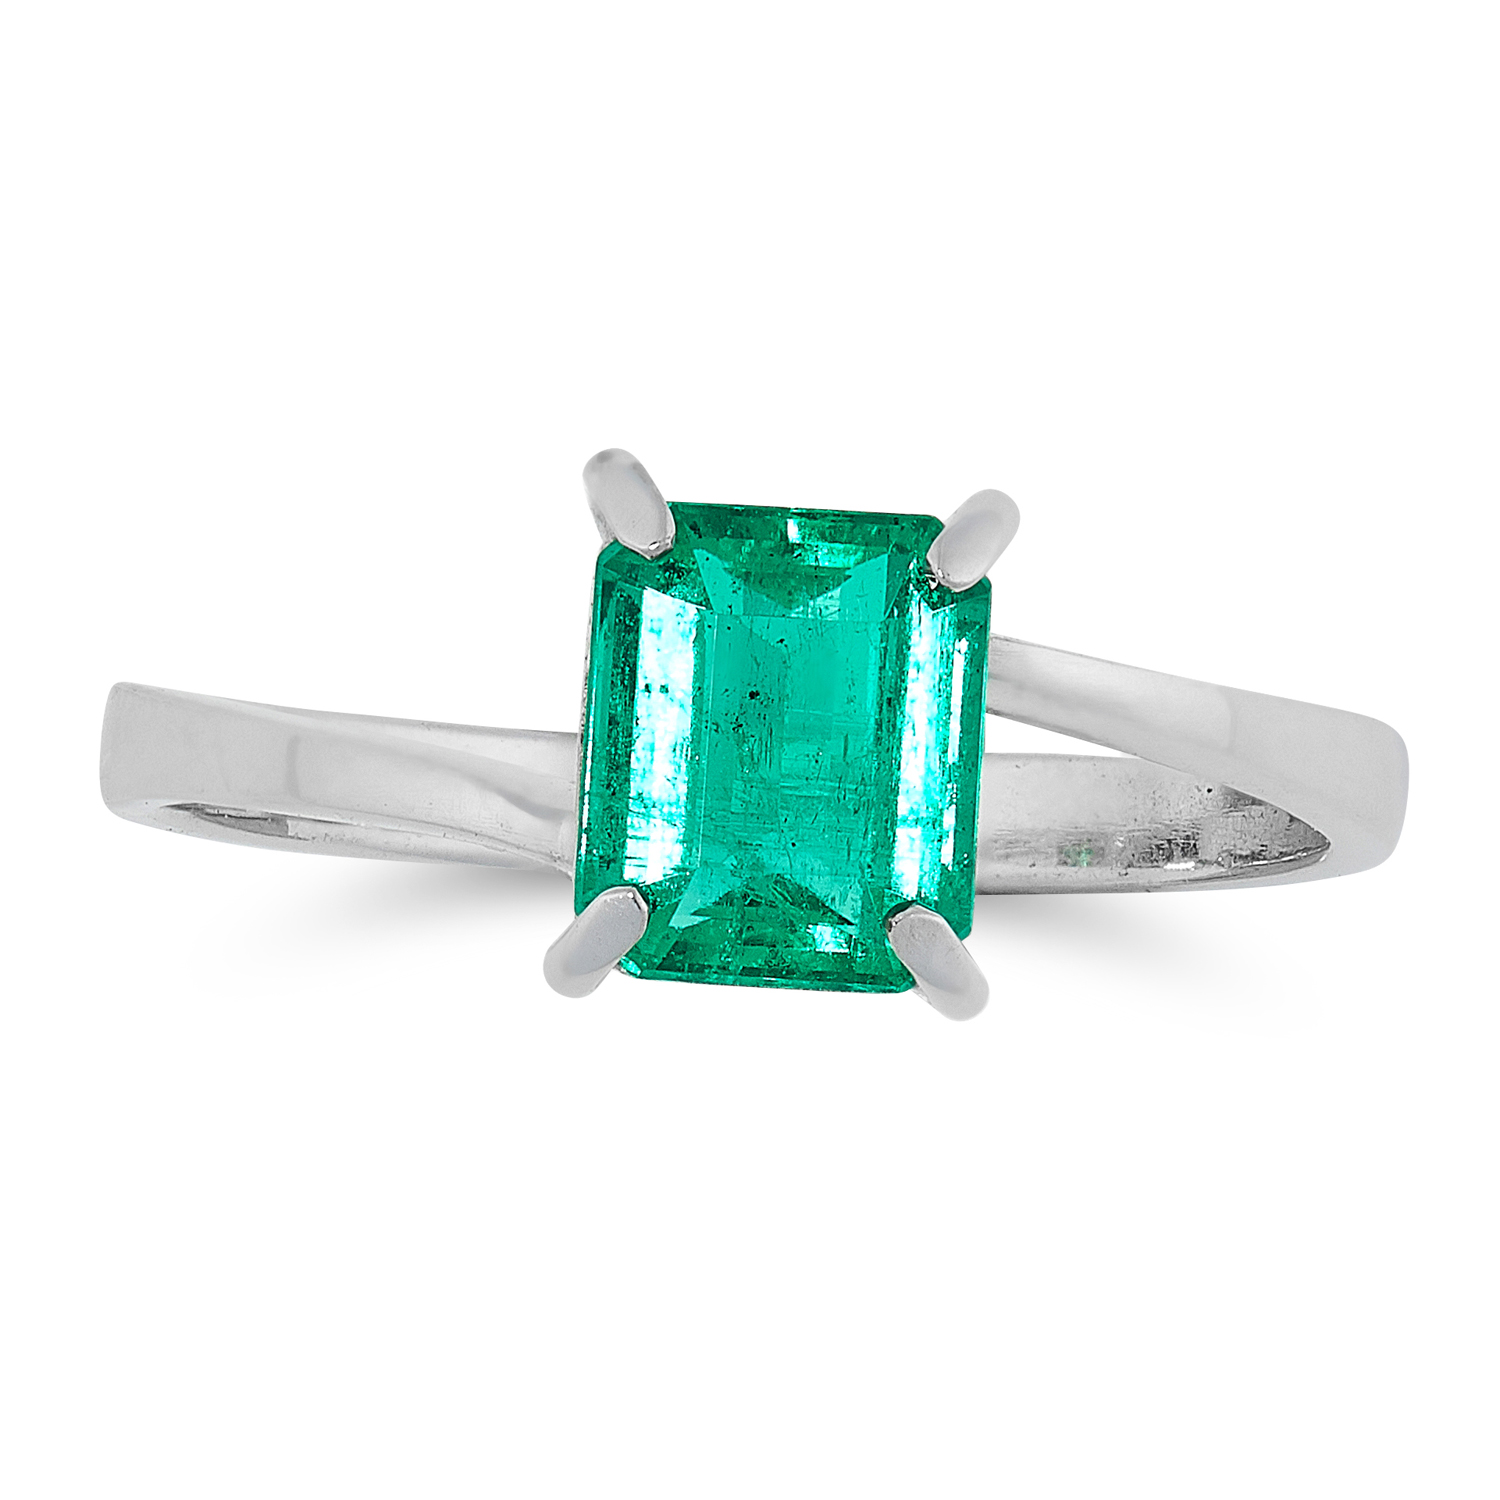 A COLOMBIAN EMERALD RING set with a single emerald cut emerald of 1.16 carats, within a twisted